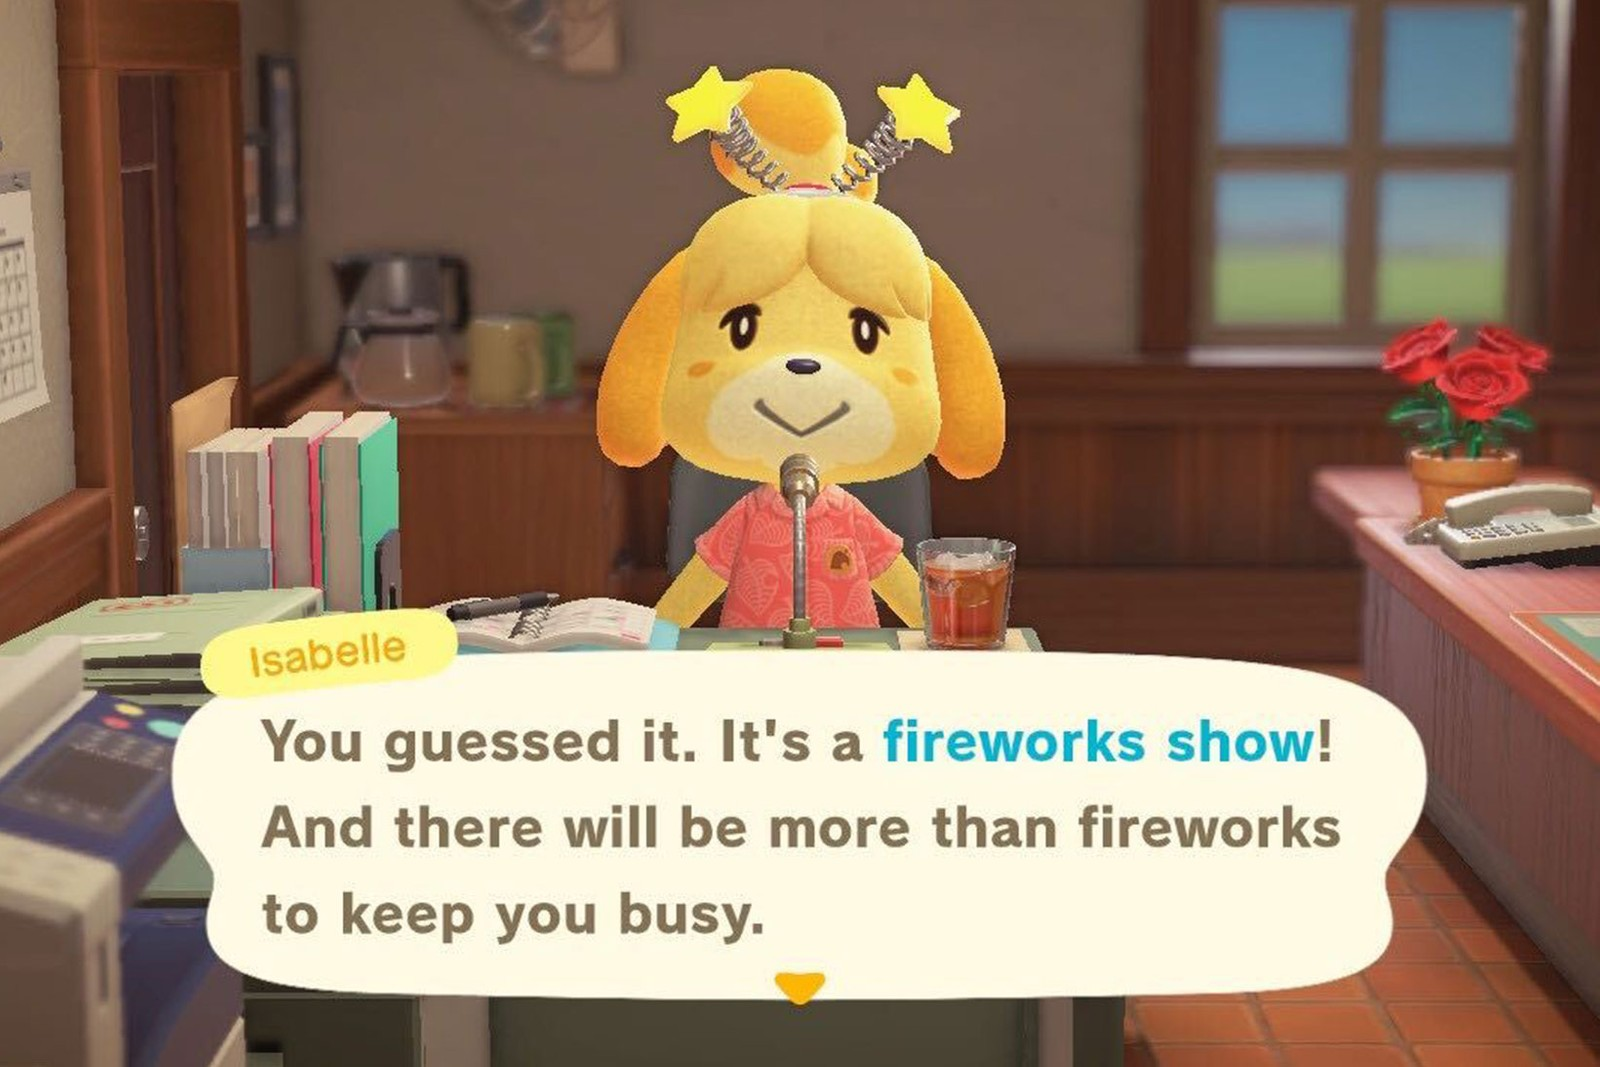 nintendo animal crossing fireworks update sunday how to isabelle